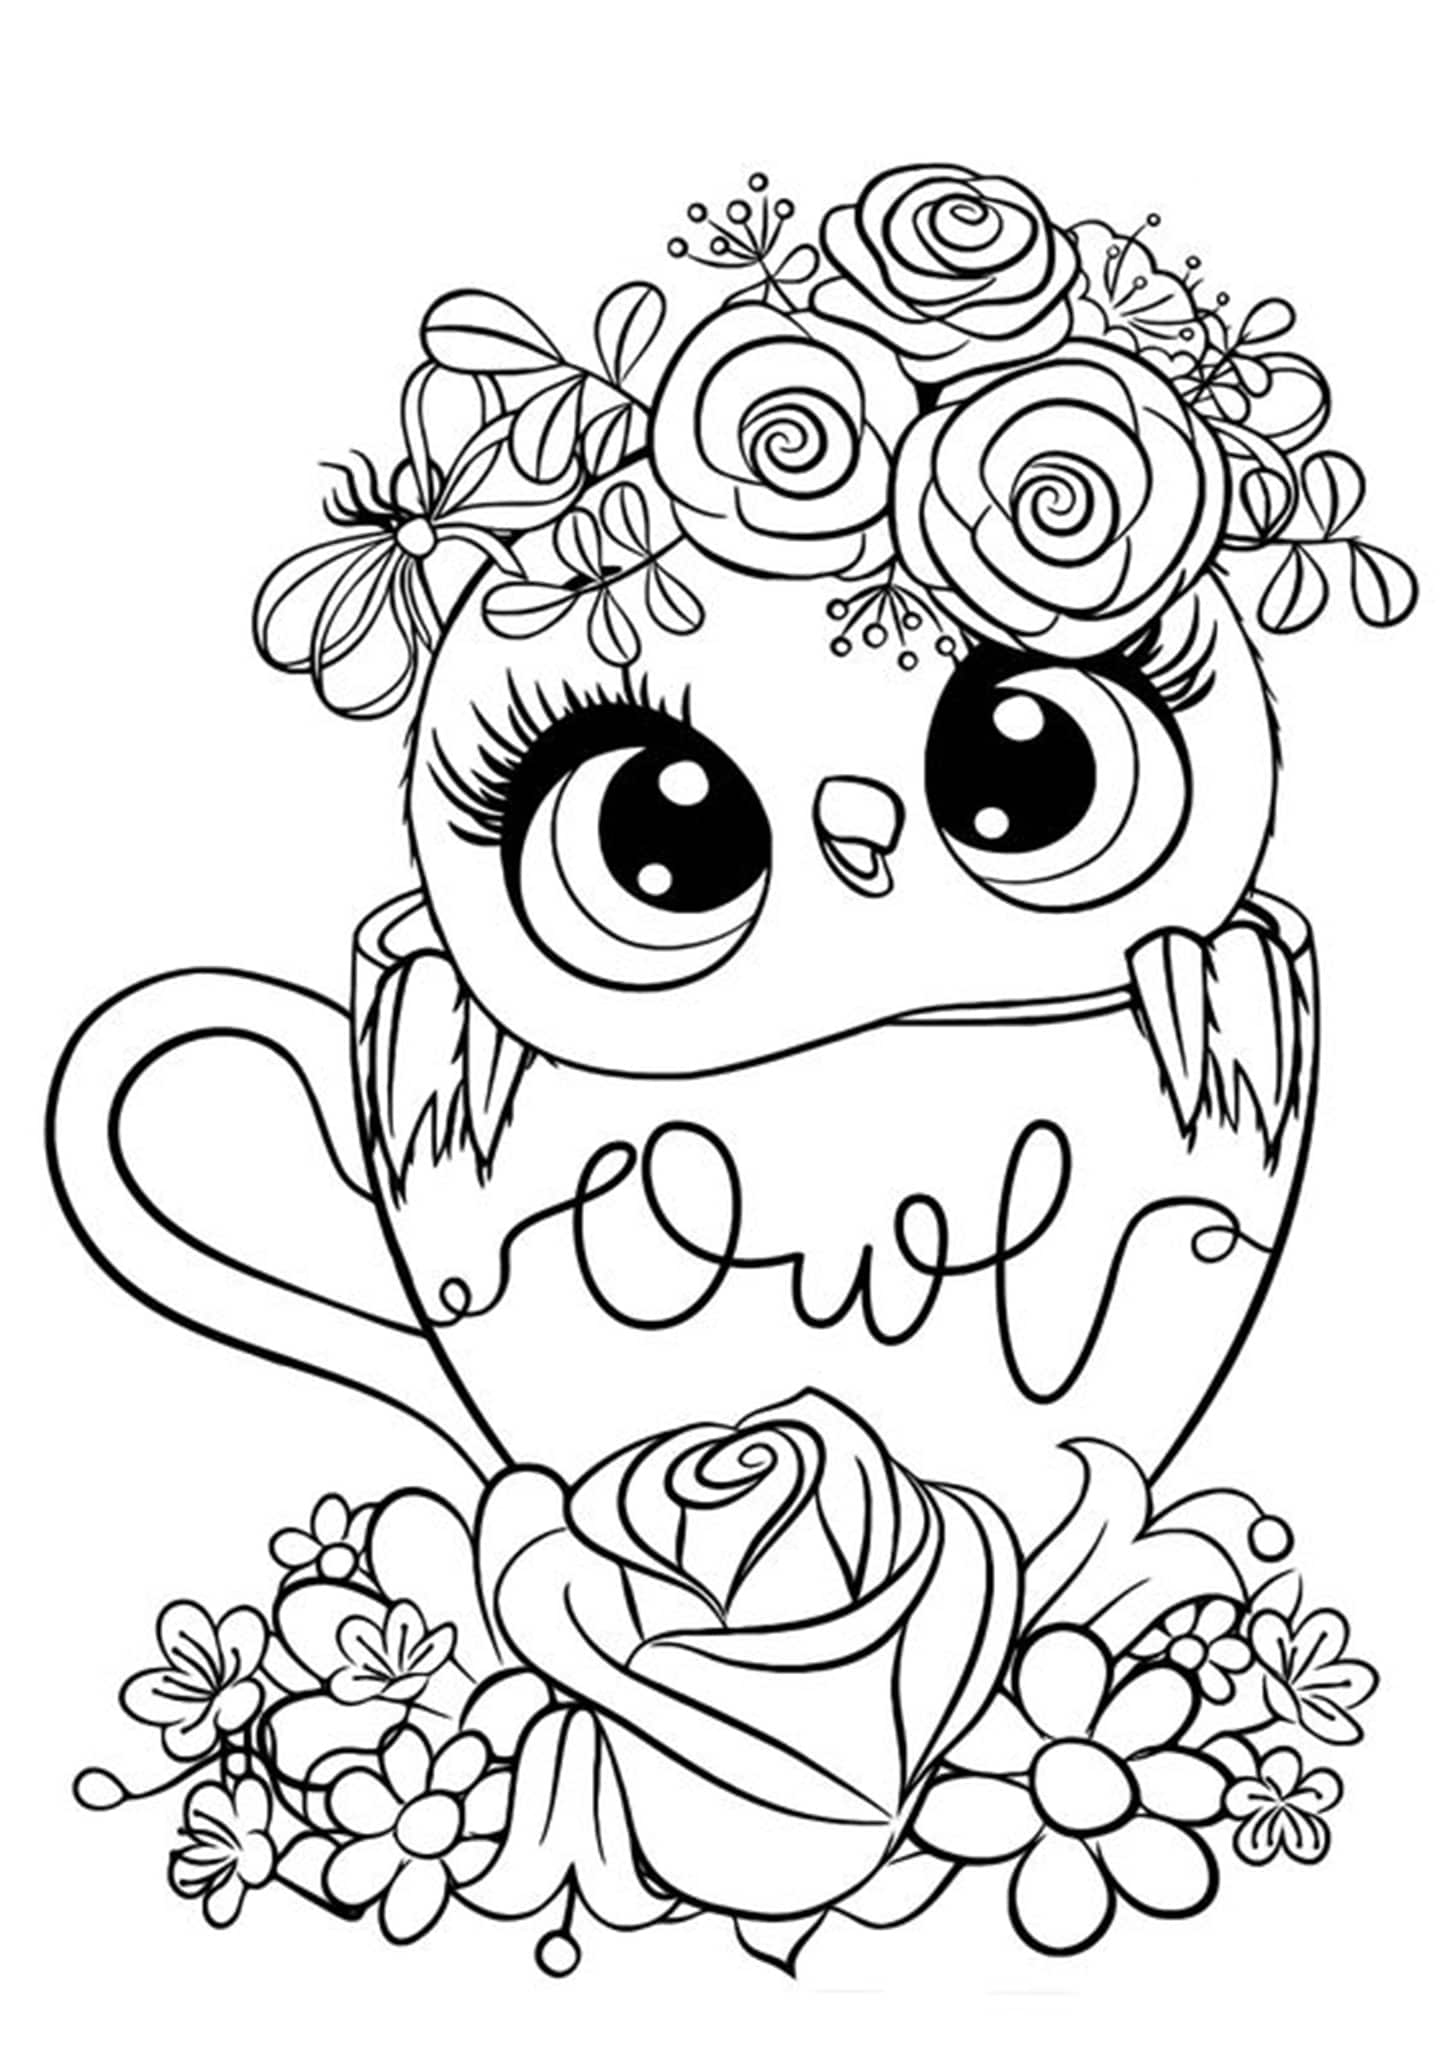 color in pages precious moments animal coloring pages coloring home color pages in